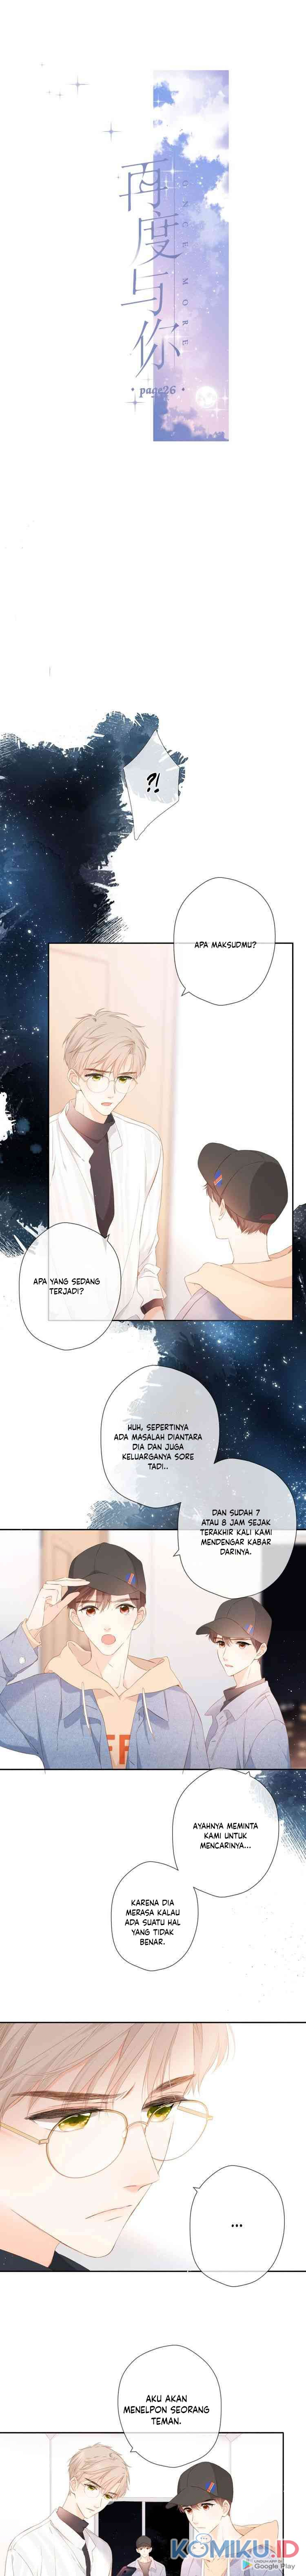 Once More Chapter 26